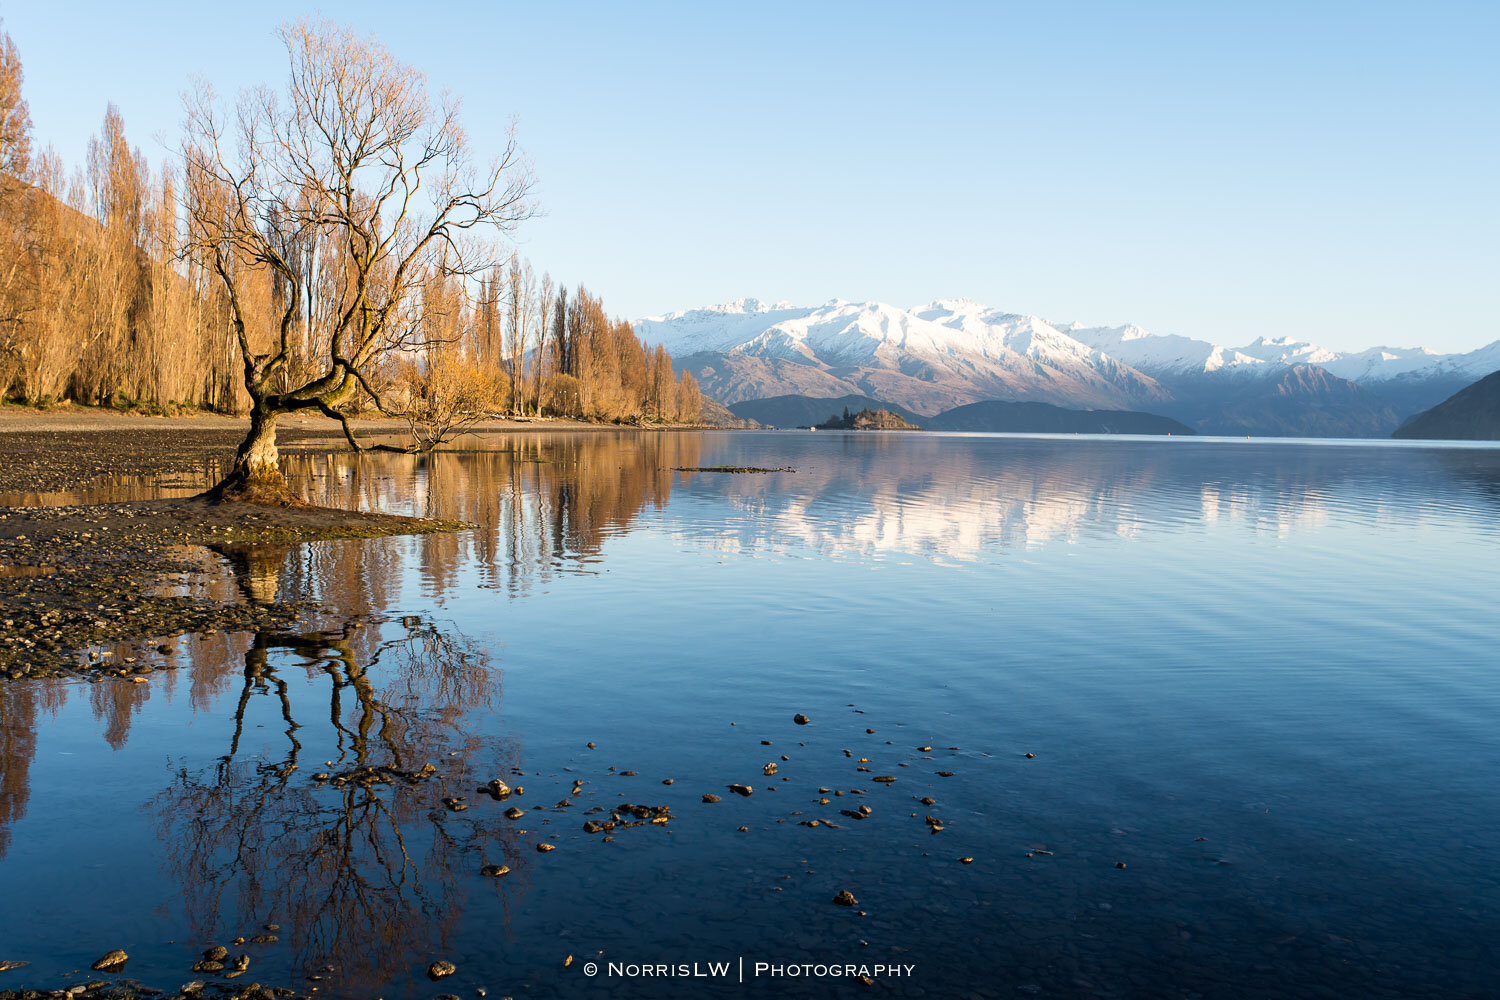 Wanaka_South_Island_NZ-20190907-019.jpg